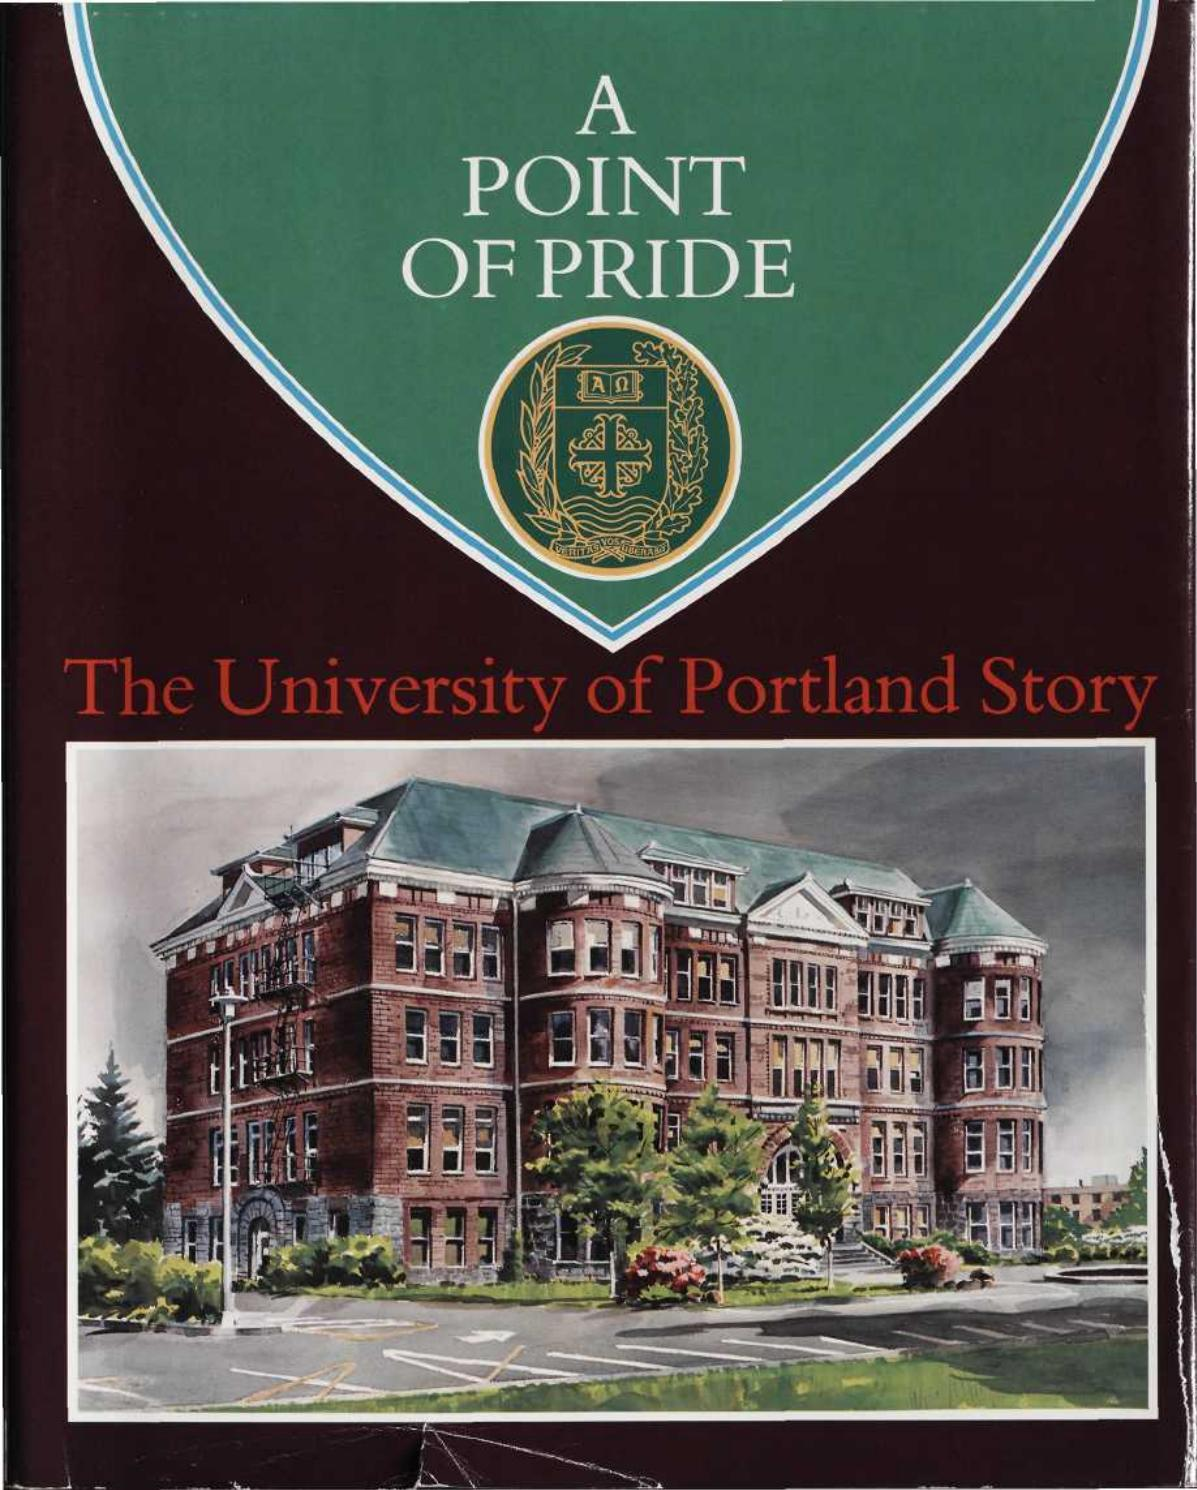 A Point Of Pride The University Of Portland Story By University Of Portland Issuu